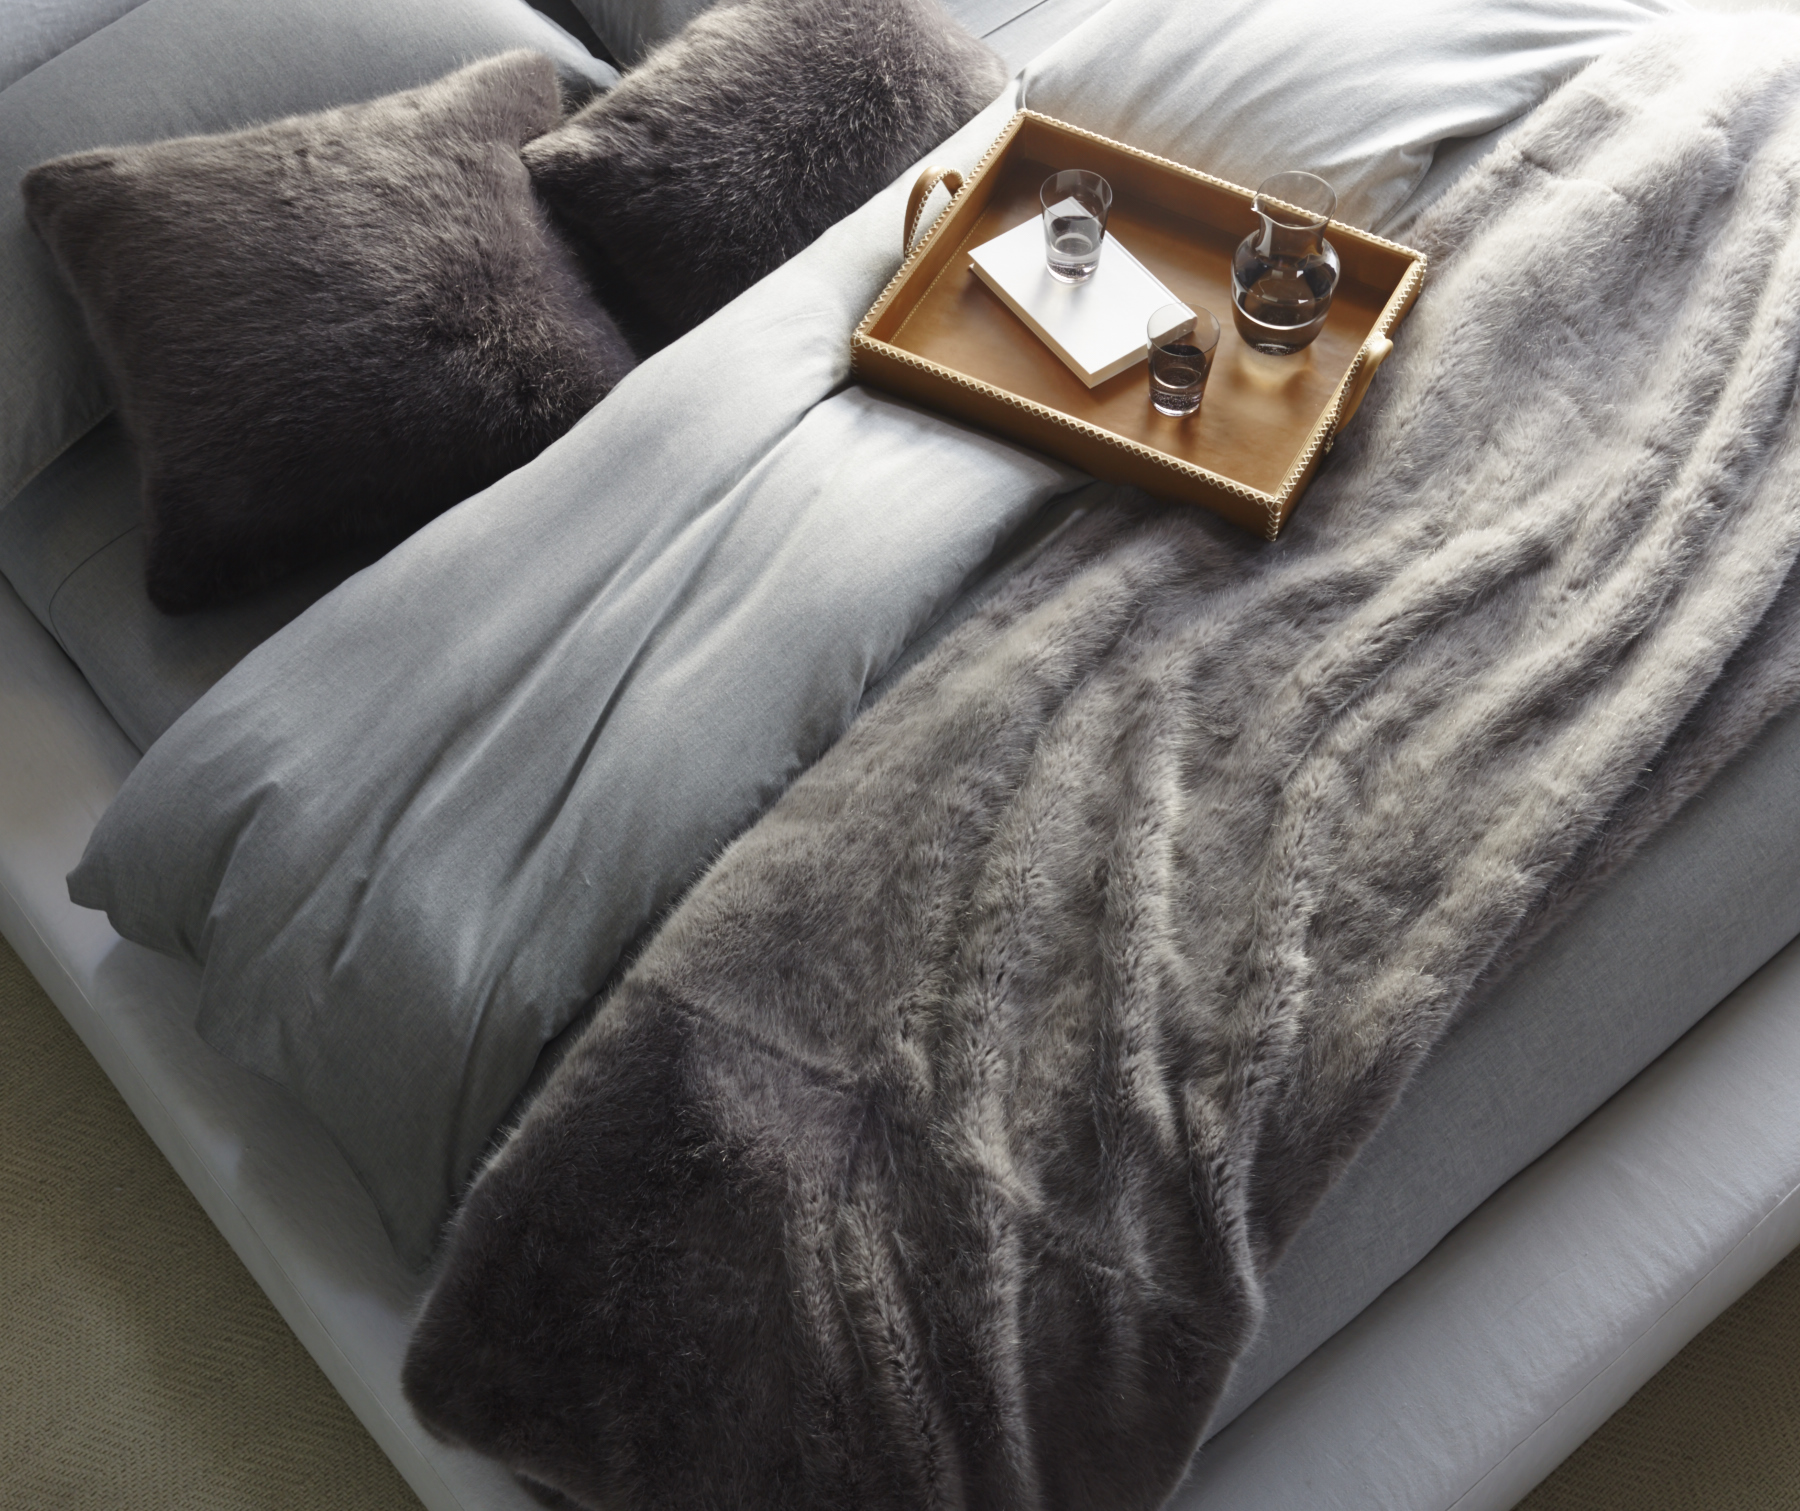 W396_Ultra_Faux_Fur_Pillow_and_Blanket_Main_1_120_V3_.jpg